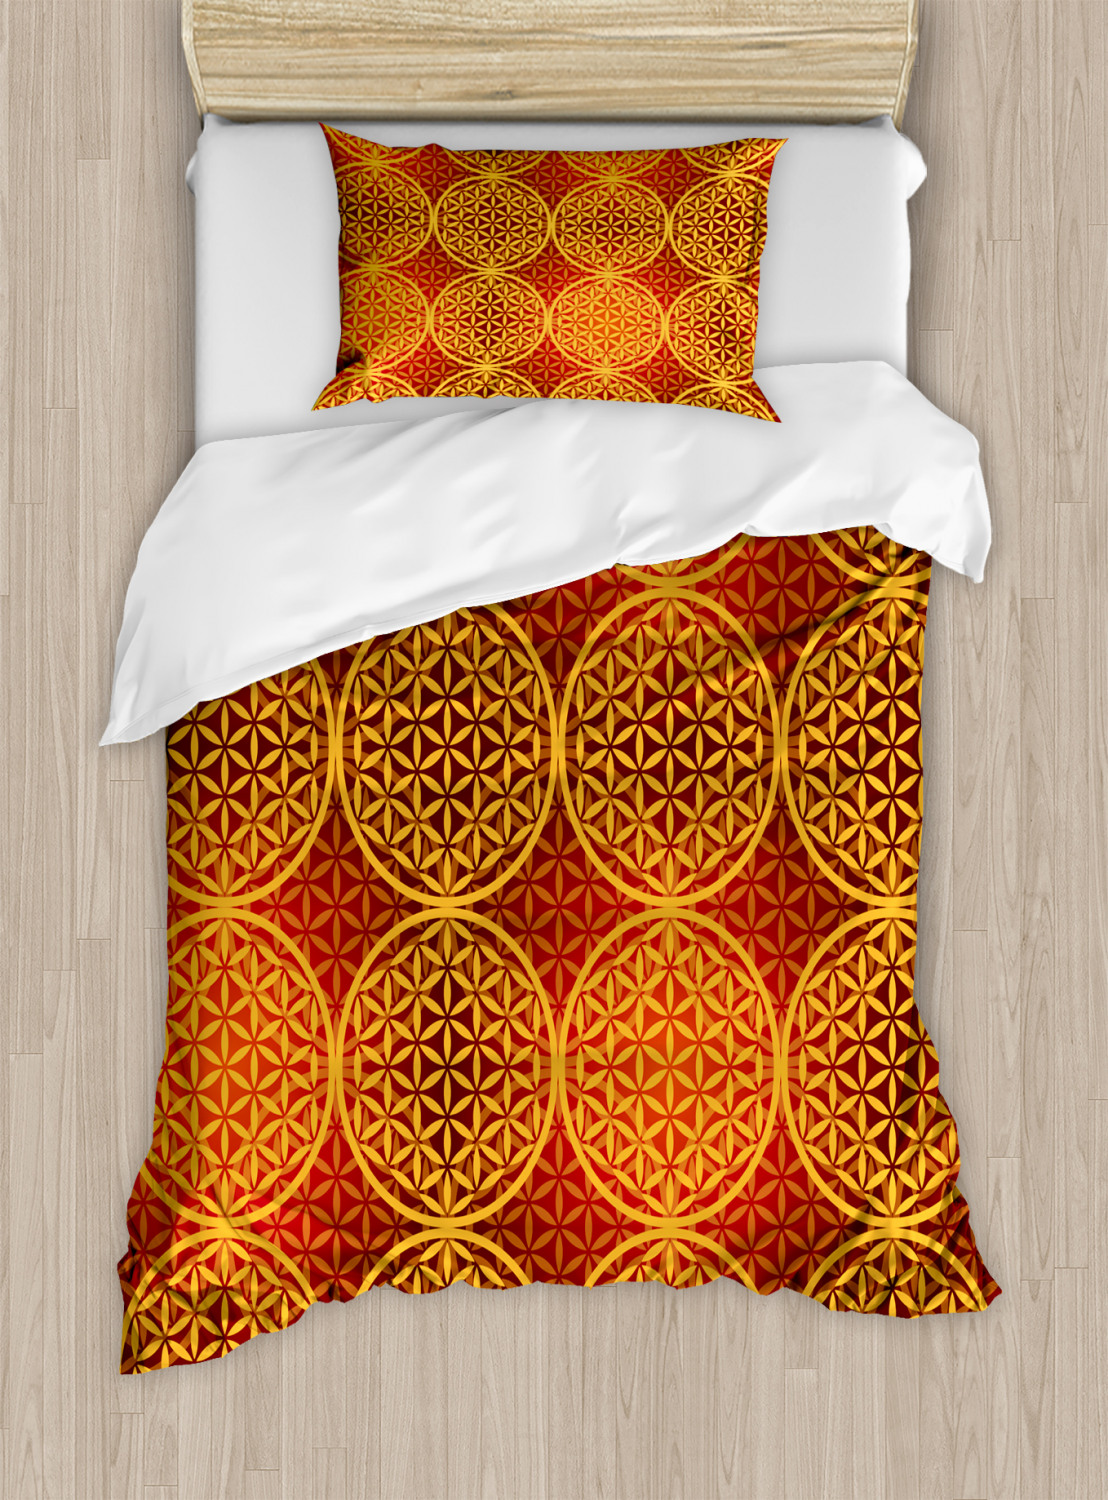 Flower-of-Life-Duvet-Cover-Set-Twin-Queen-King-Sizes-with-Pillow-Shams thumbnail 49